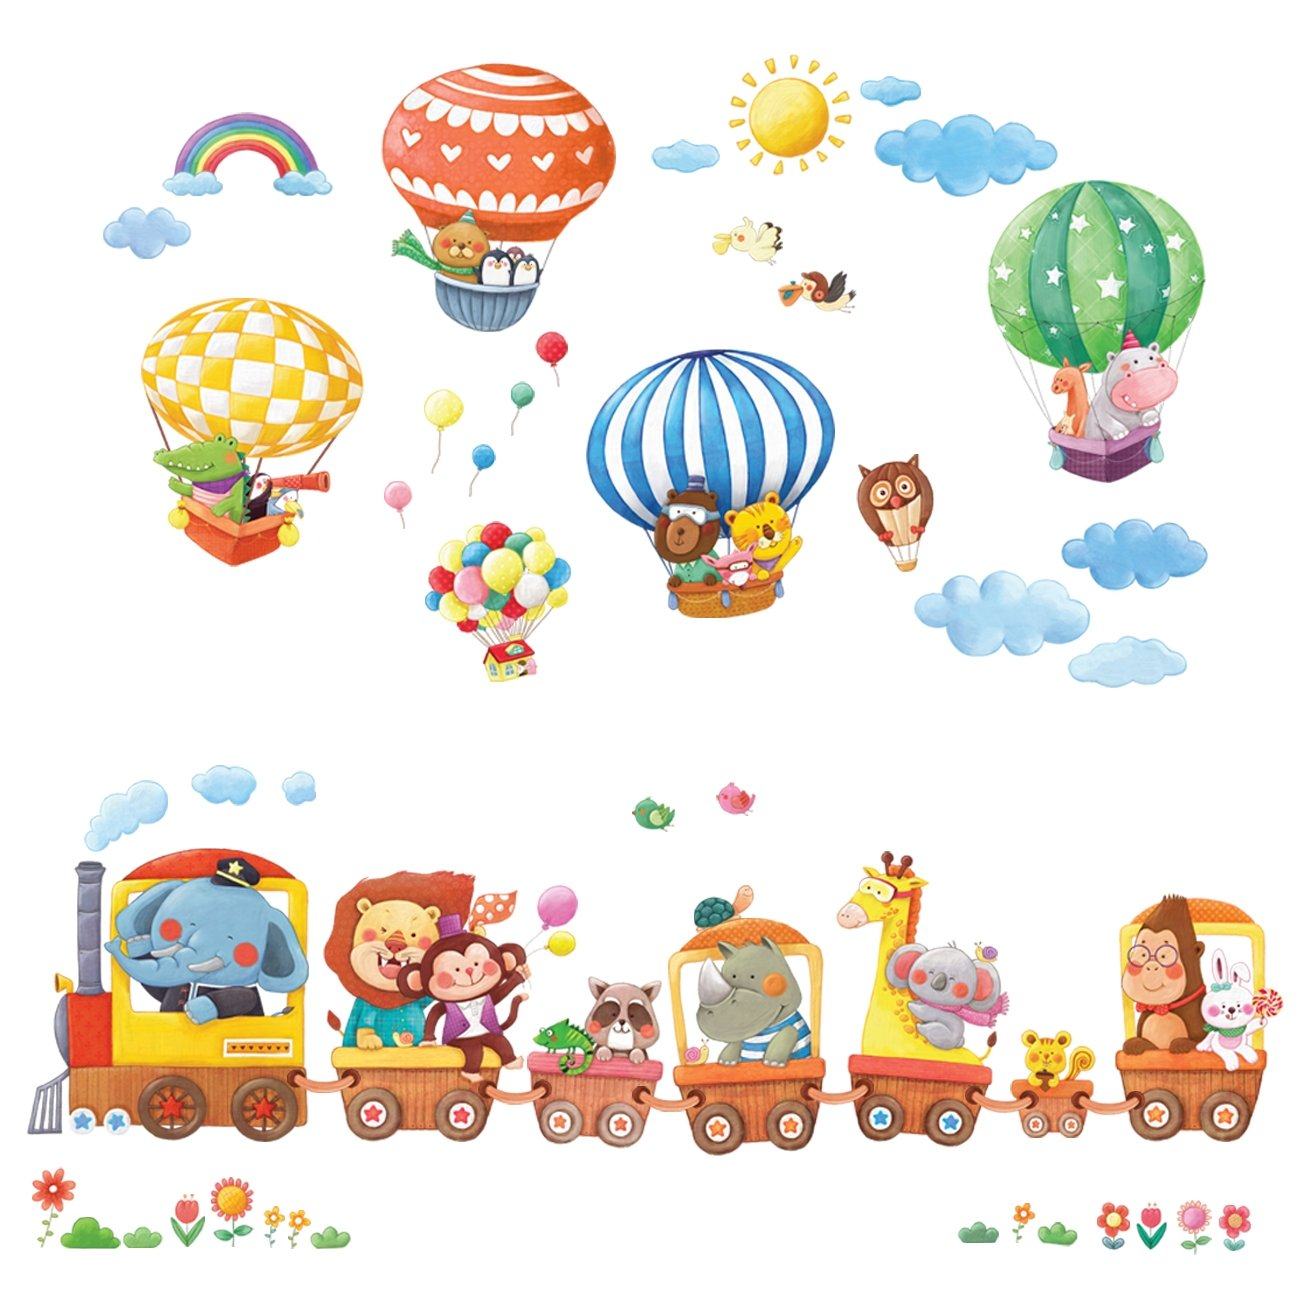 DECOWALL DL-1406L Animal Train & Hot Air Balloons Kids Wall Stickers Wall Decals Peel and Stick Removable Wall Stickers for Kids Nursery Bedroom Living Room (XLarge) by Decowall